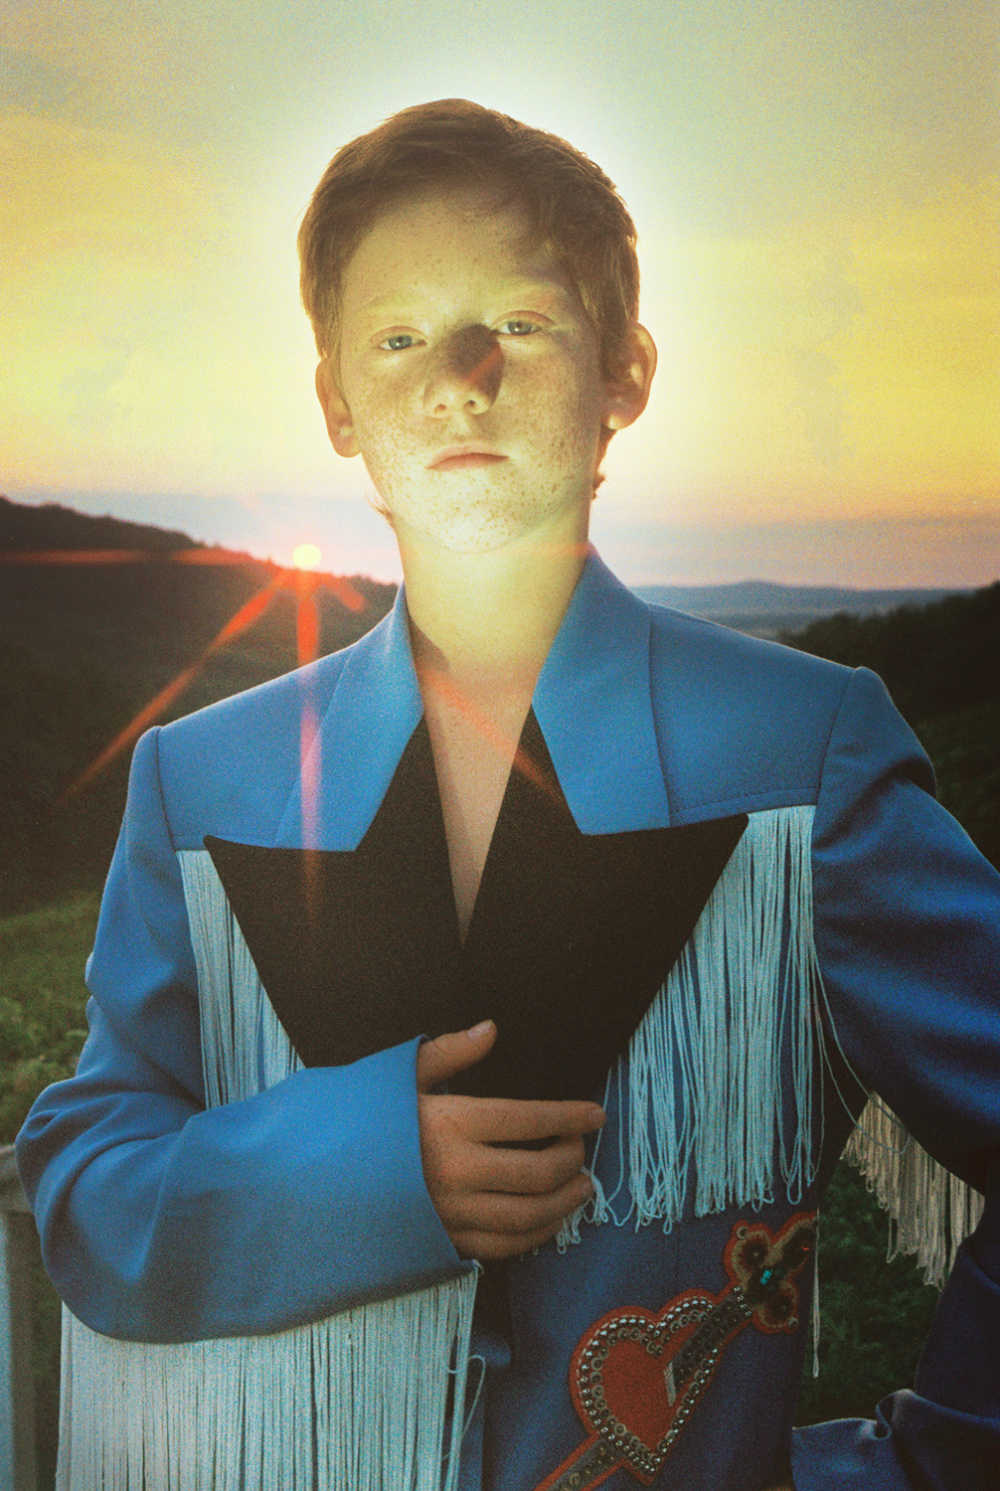 Petra Collins, Little Prince (Palko), 2016. Courtesy of the artist.